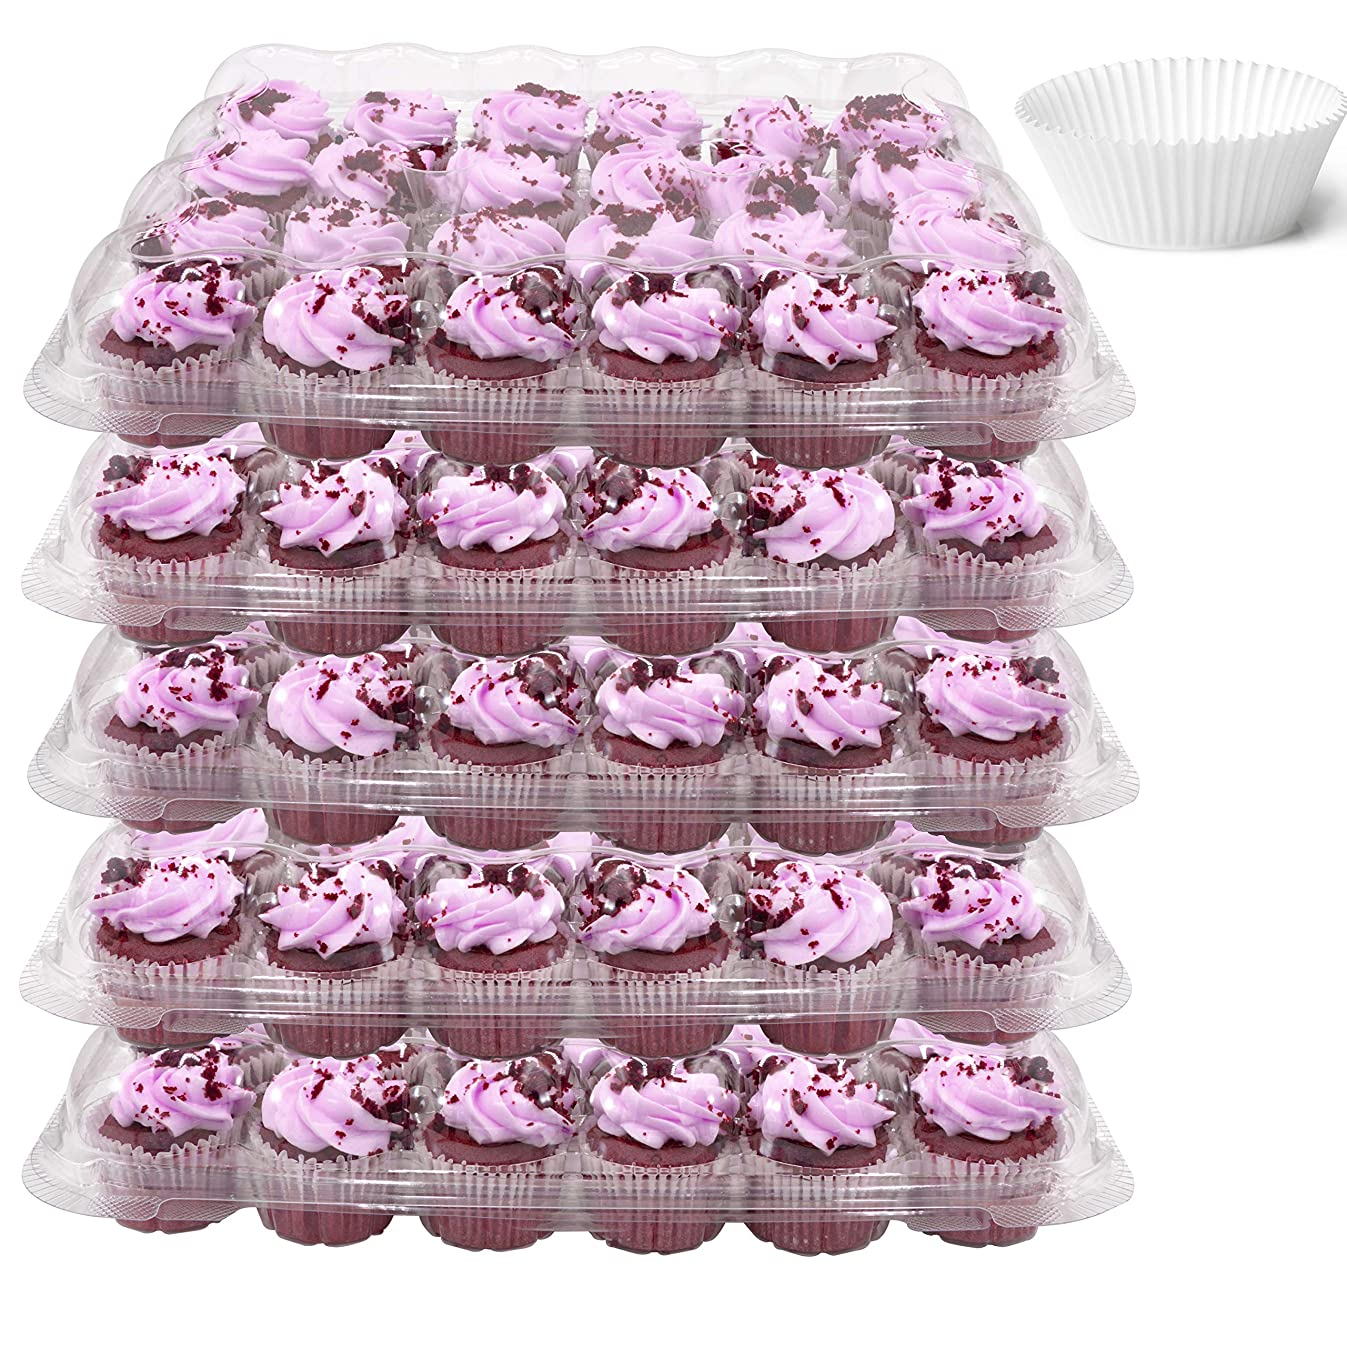 24 Compartment Mini Cupcake Containers, Set of 5 Disposable Plastic High Dome Lid Cupcake Boxes for Transporting Small Cupcakes with Tall Icing